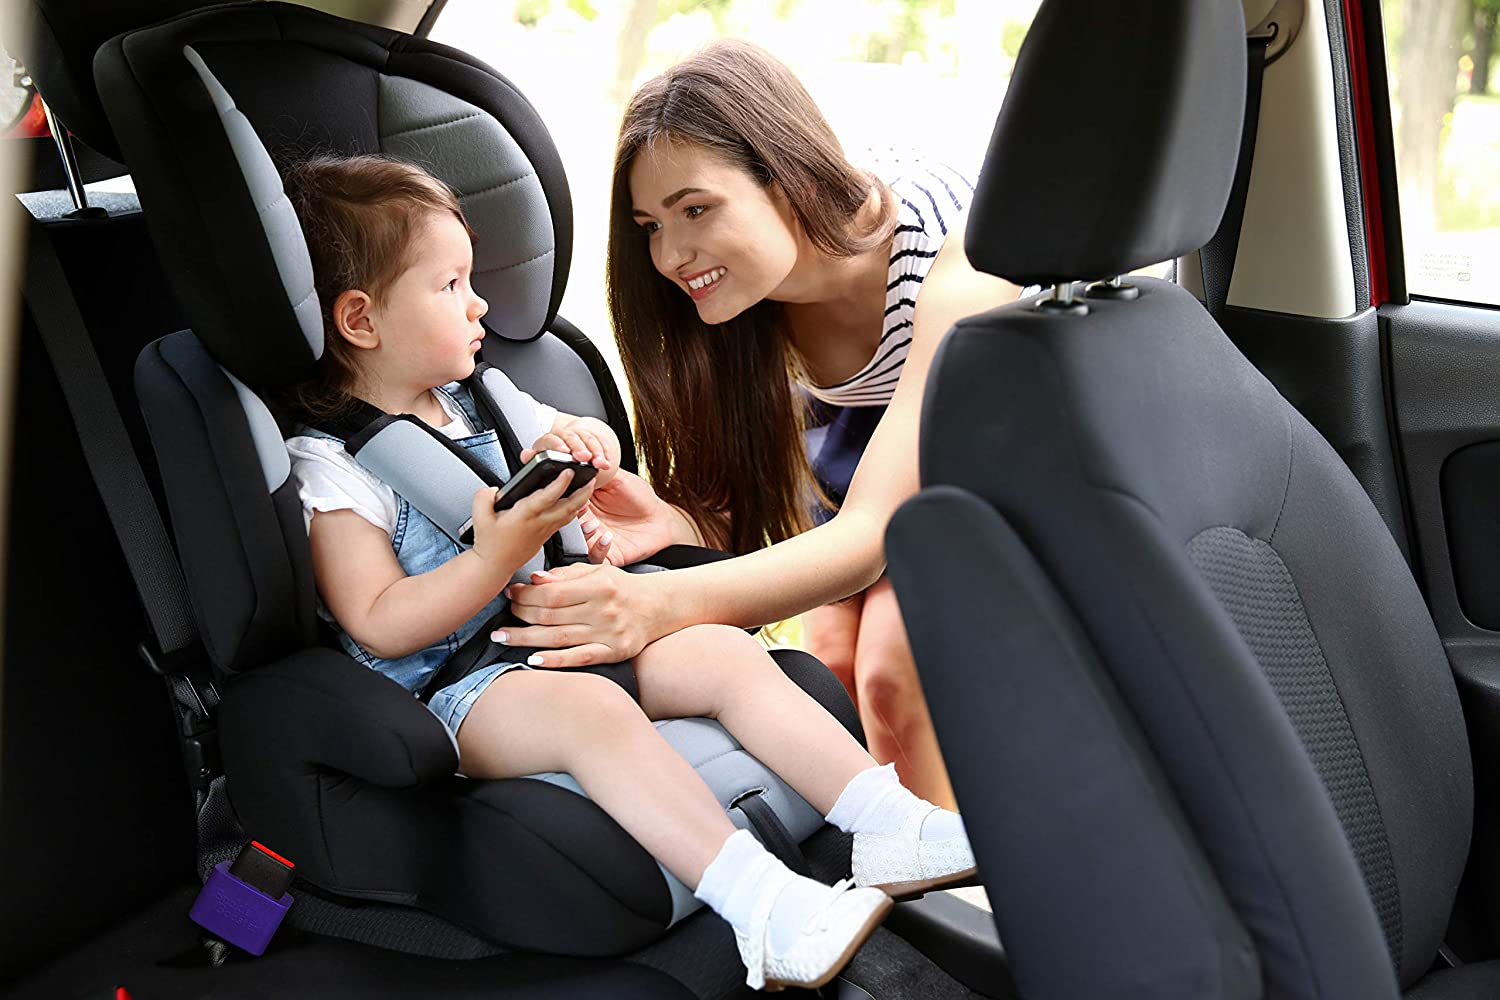 Makes Receptacle Stand Upright Buckling Seat Belt Buckle Booster 1 - Raises Your Seat Belt for Easy Access Stop Fishing for Buried Seat Belts BPA Free